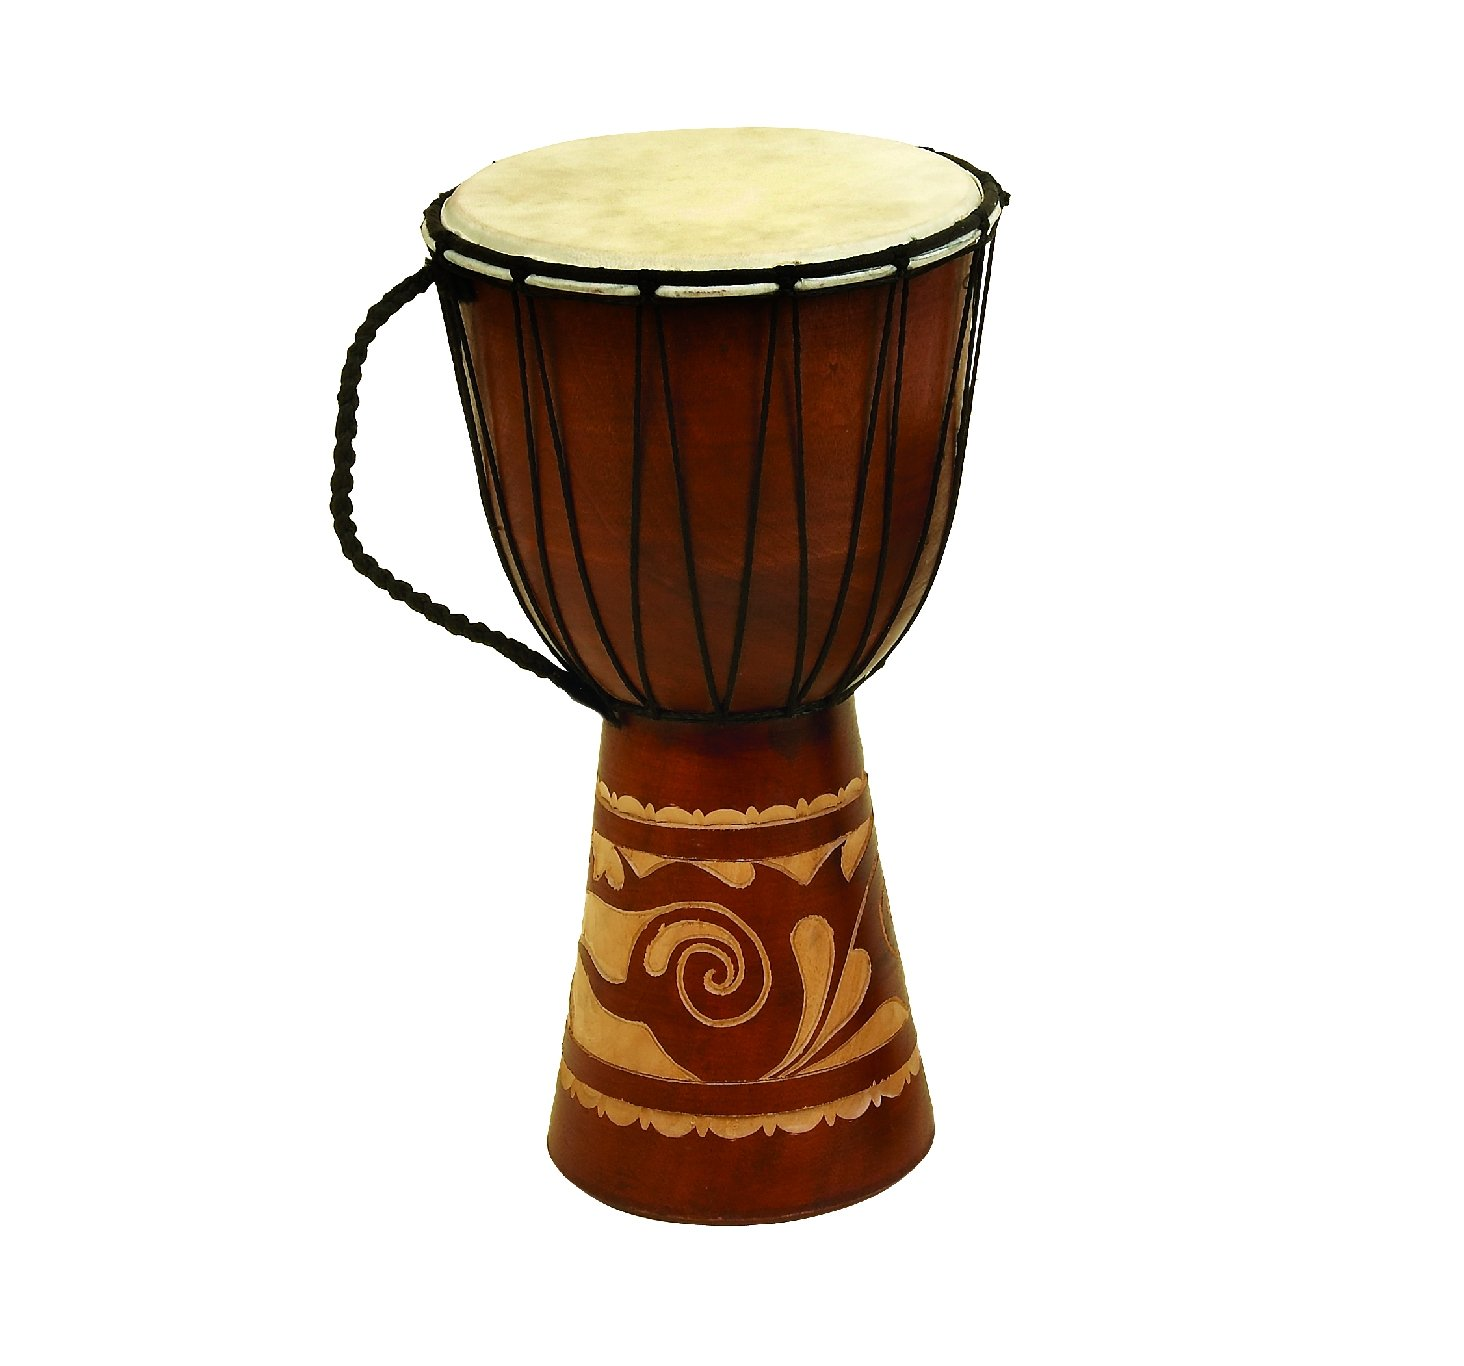 Deco 79 89847 Wood Leather Djembe Drum Home Décor Product, 16''H/9''W by Deco 79